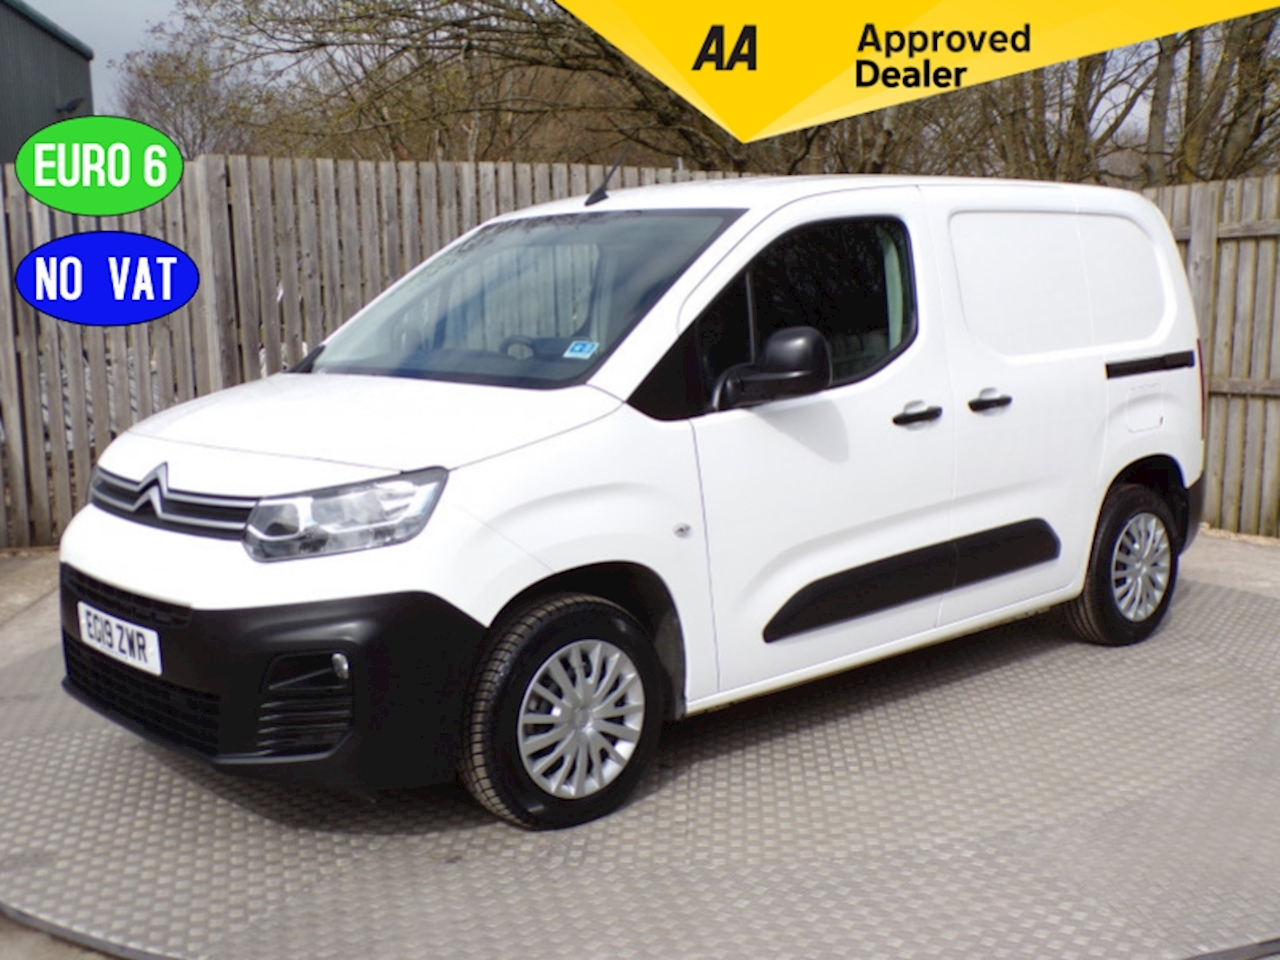 Citroen Berlingo 650 Enterprise Euro 6 NO VAT A/C